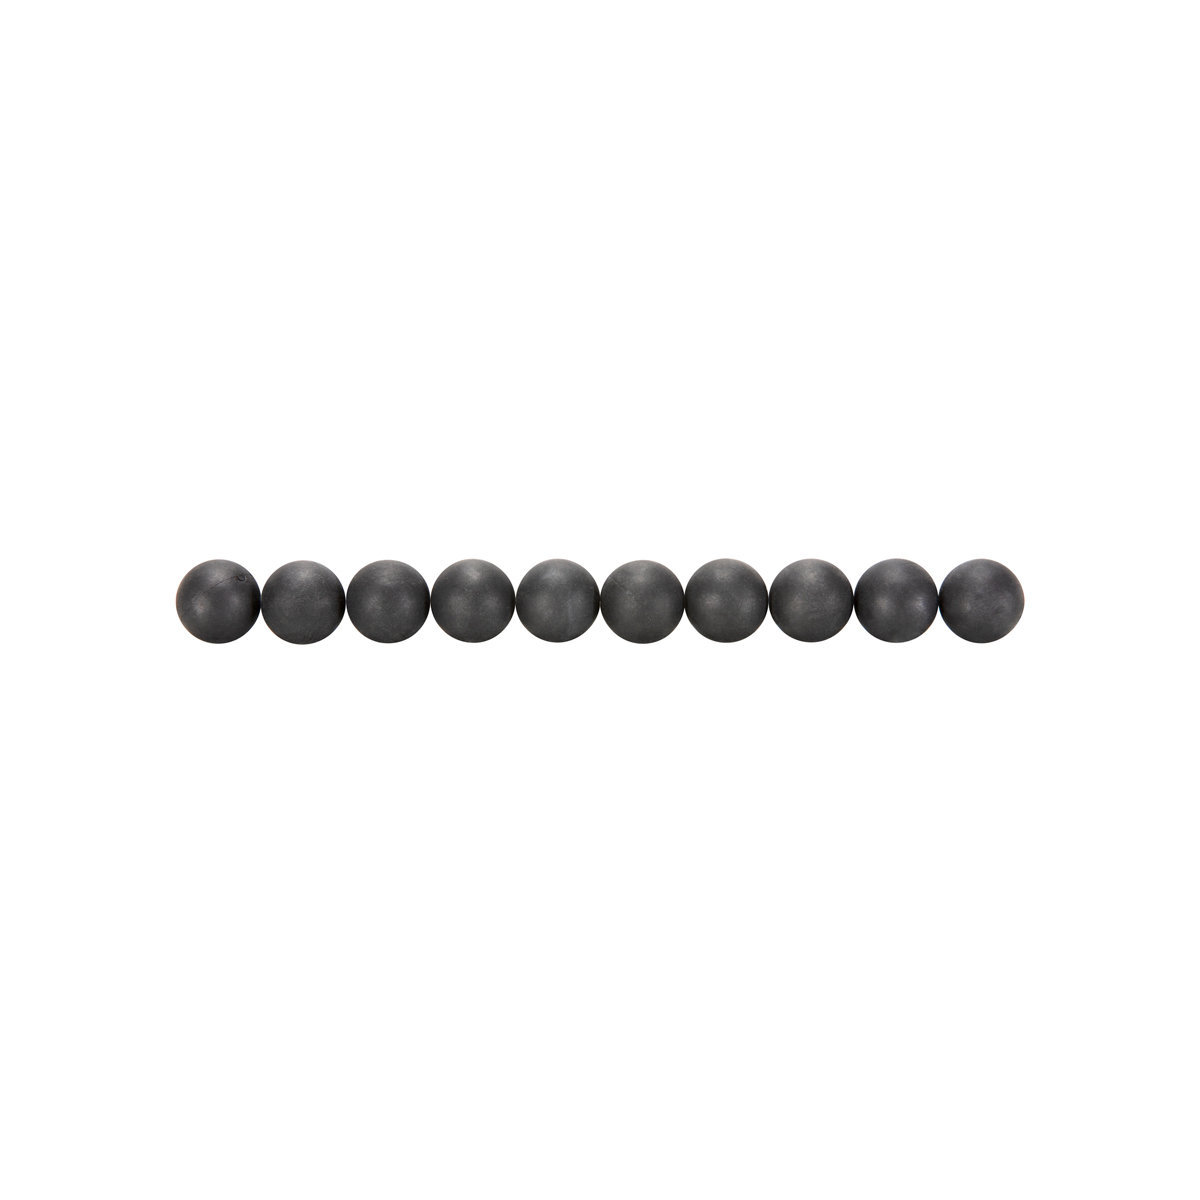 View larger image of Umarex T4E BY P2P .50 Caliber Rubber Balls -10 Round